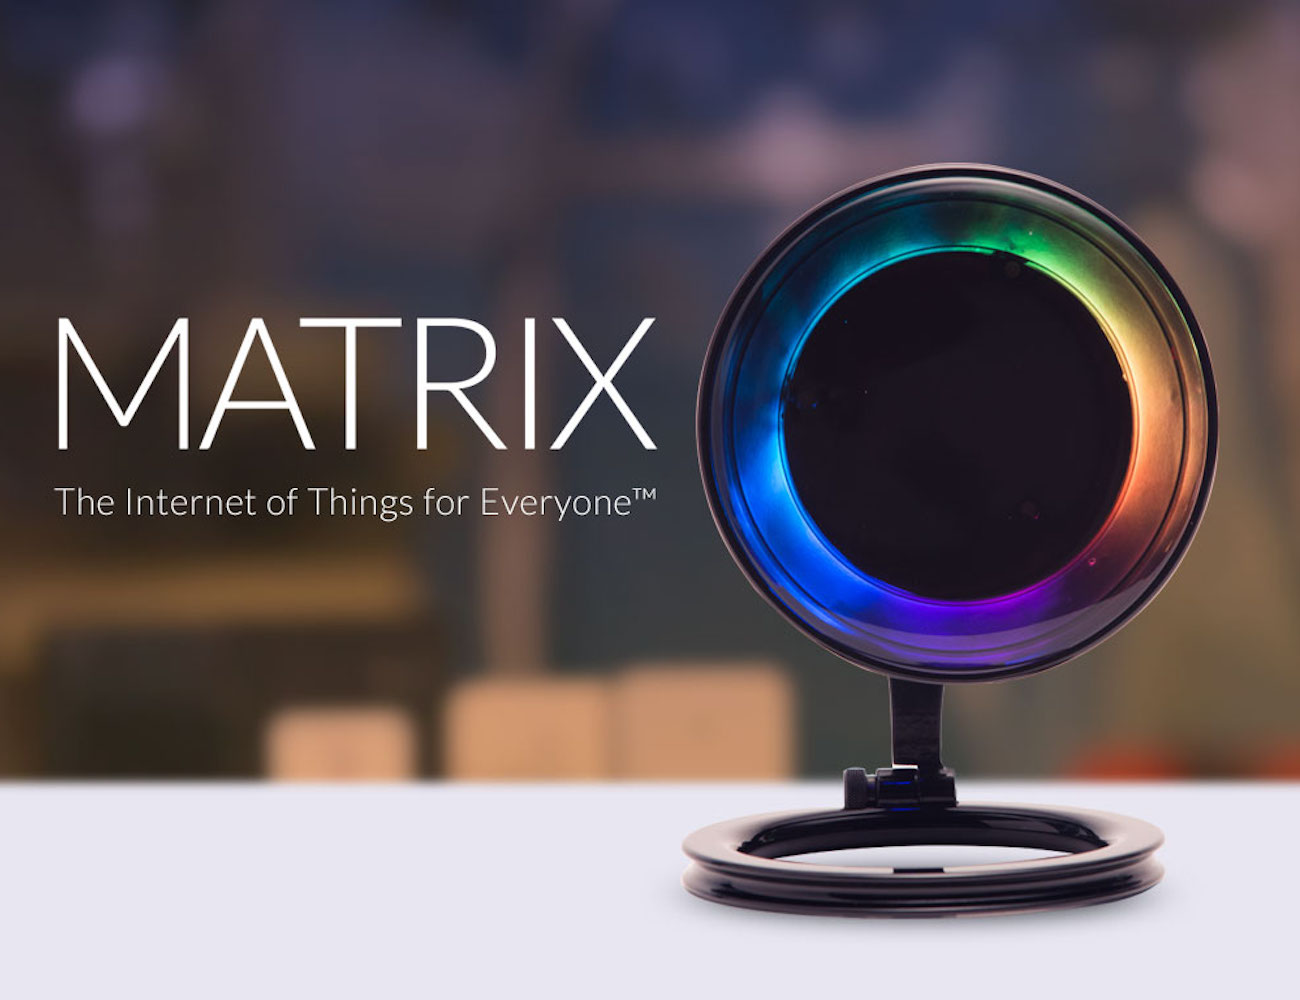 Matrix – The World's First App Store for the Connected Home